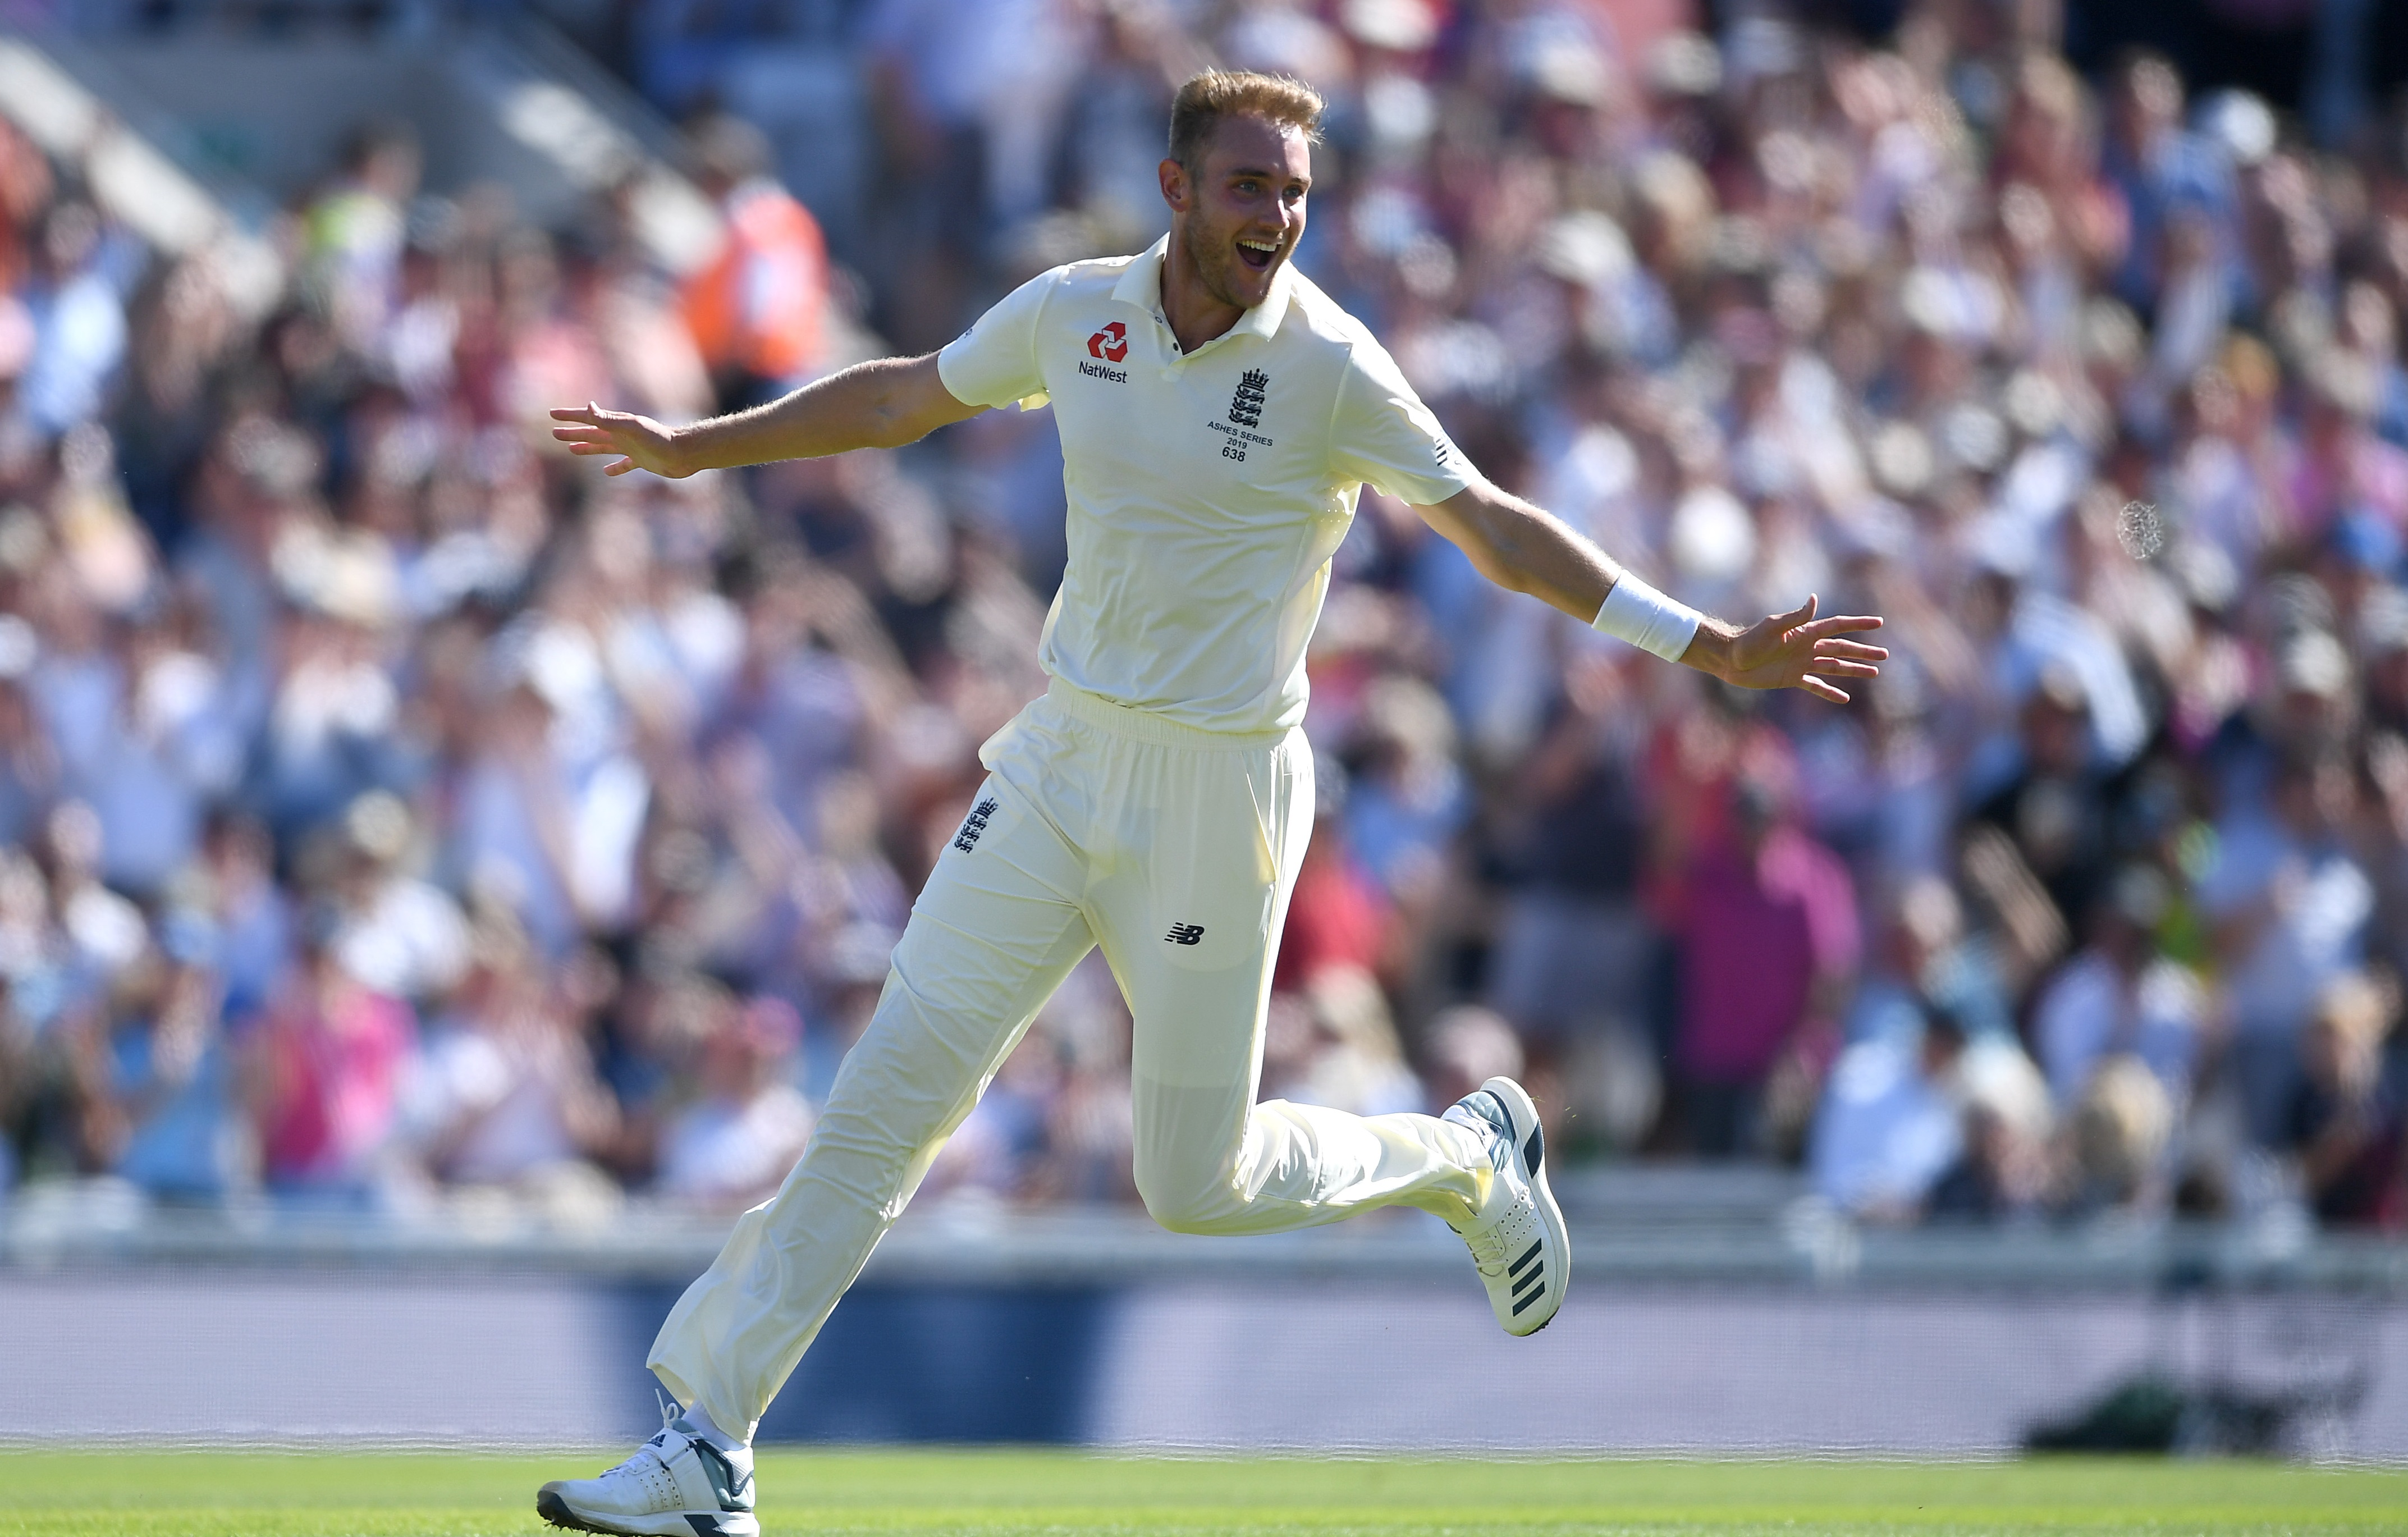 'He's on the verge of greatness' – Hadlee lauds 'extraordinary' Broad